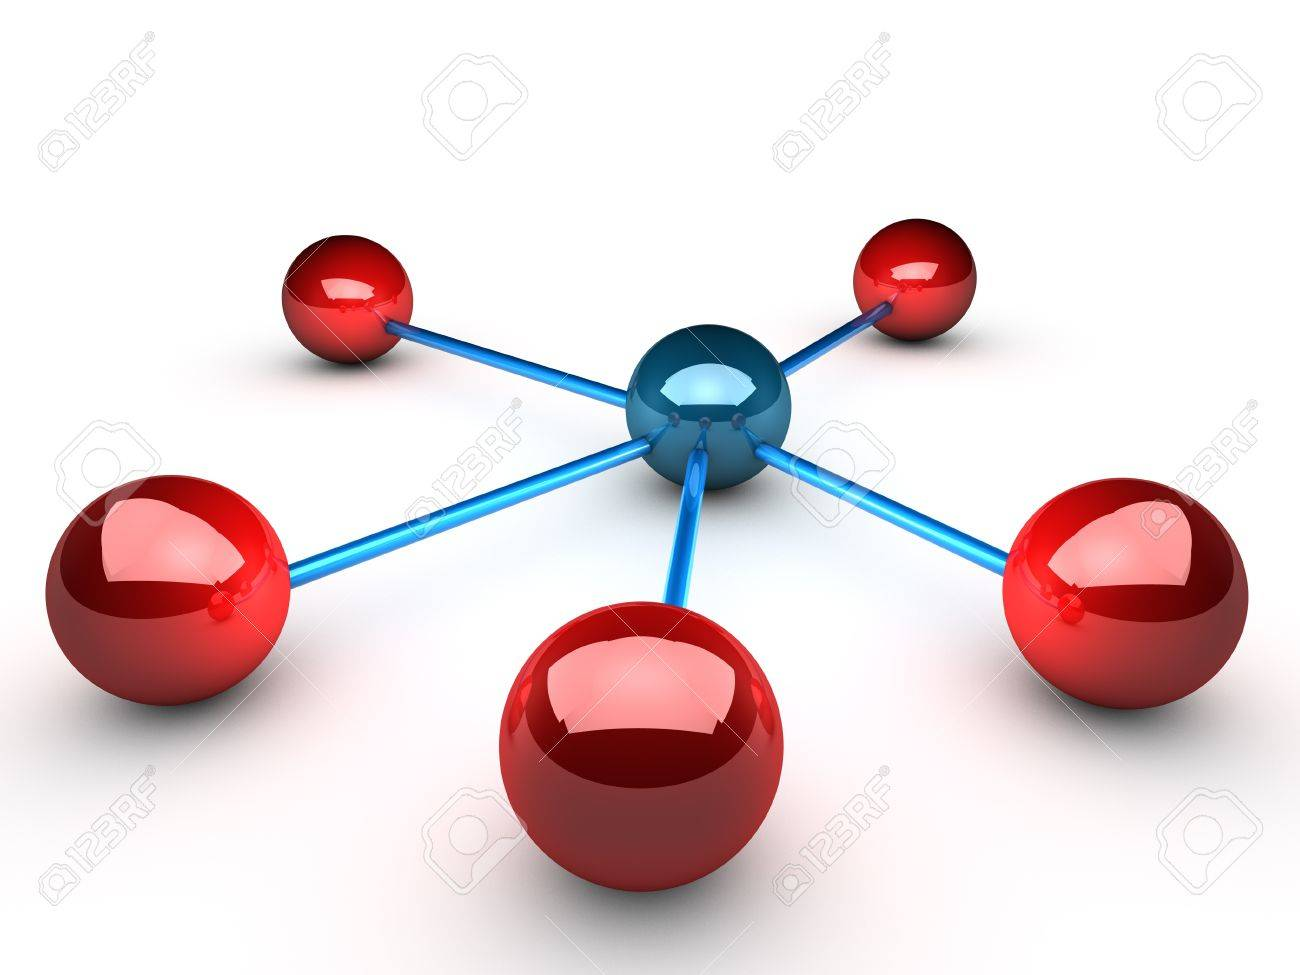 Network symbolized by connected spheres Stock Photo - 11190559